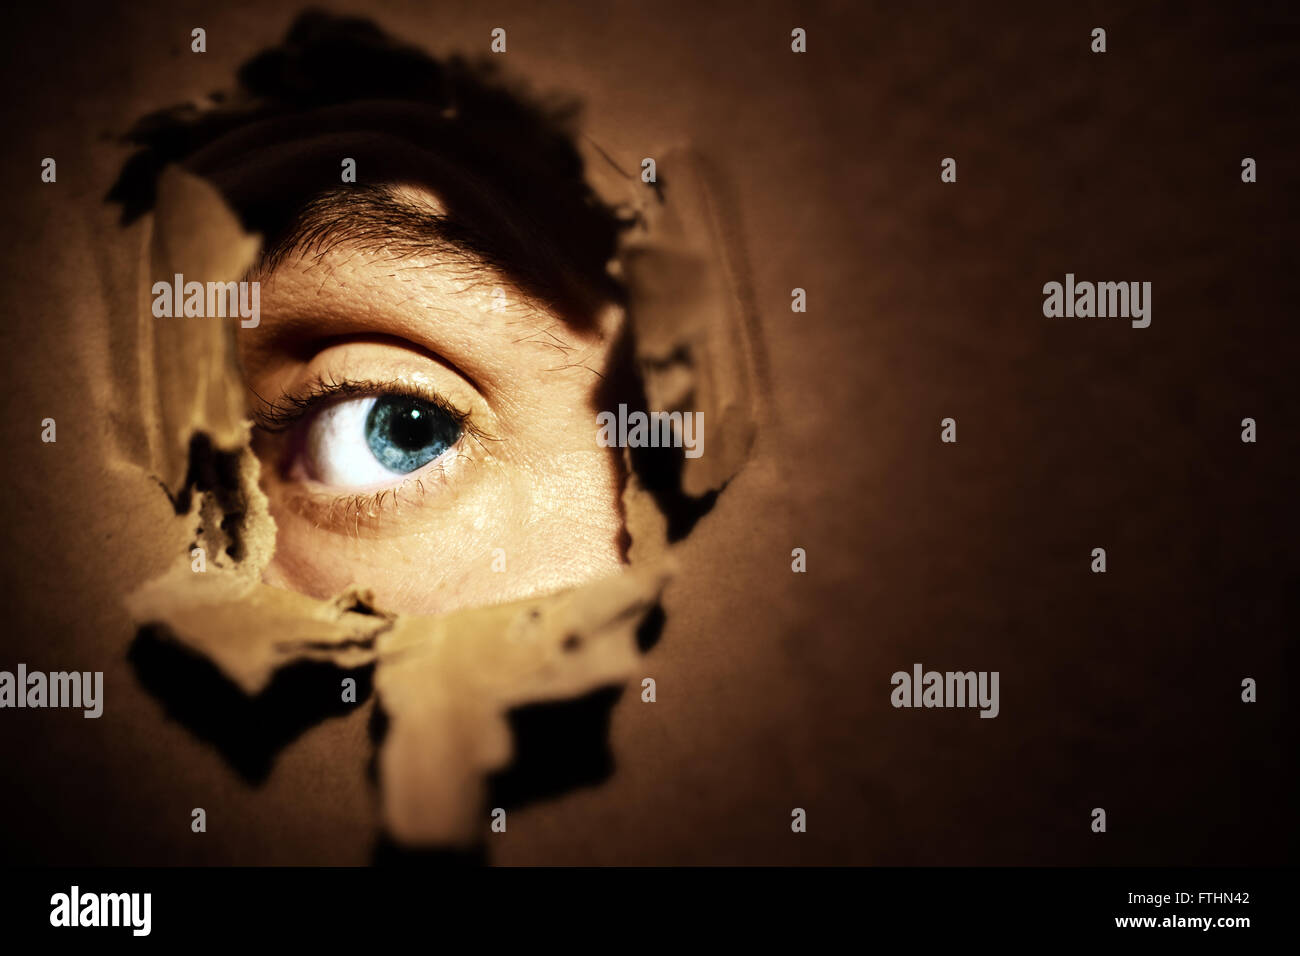 Male eyes spying through a hole in the wall - Stock Image